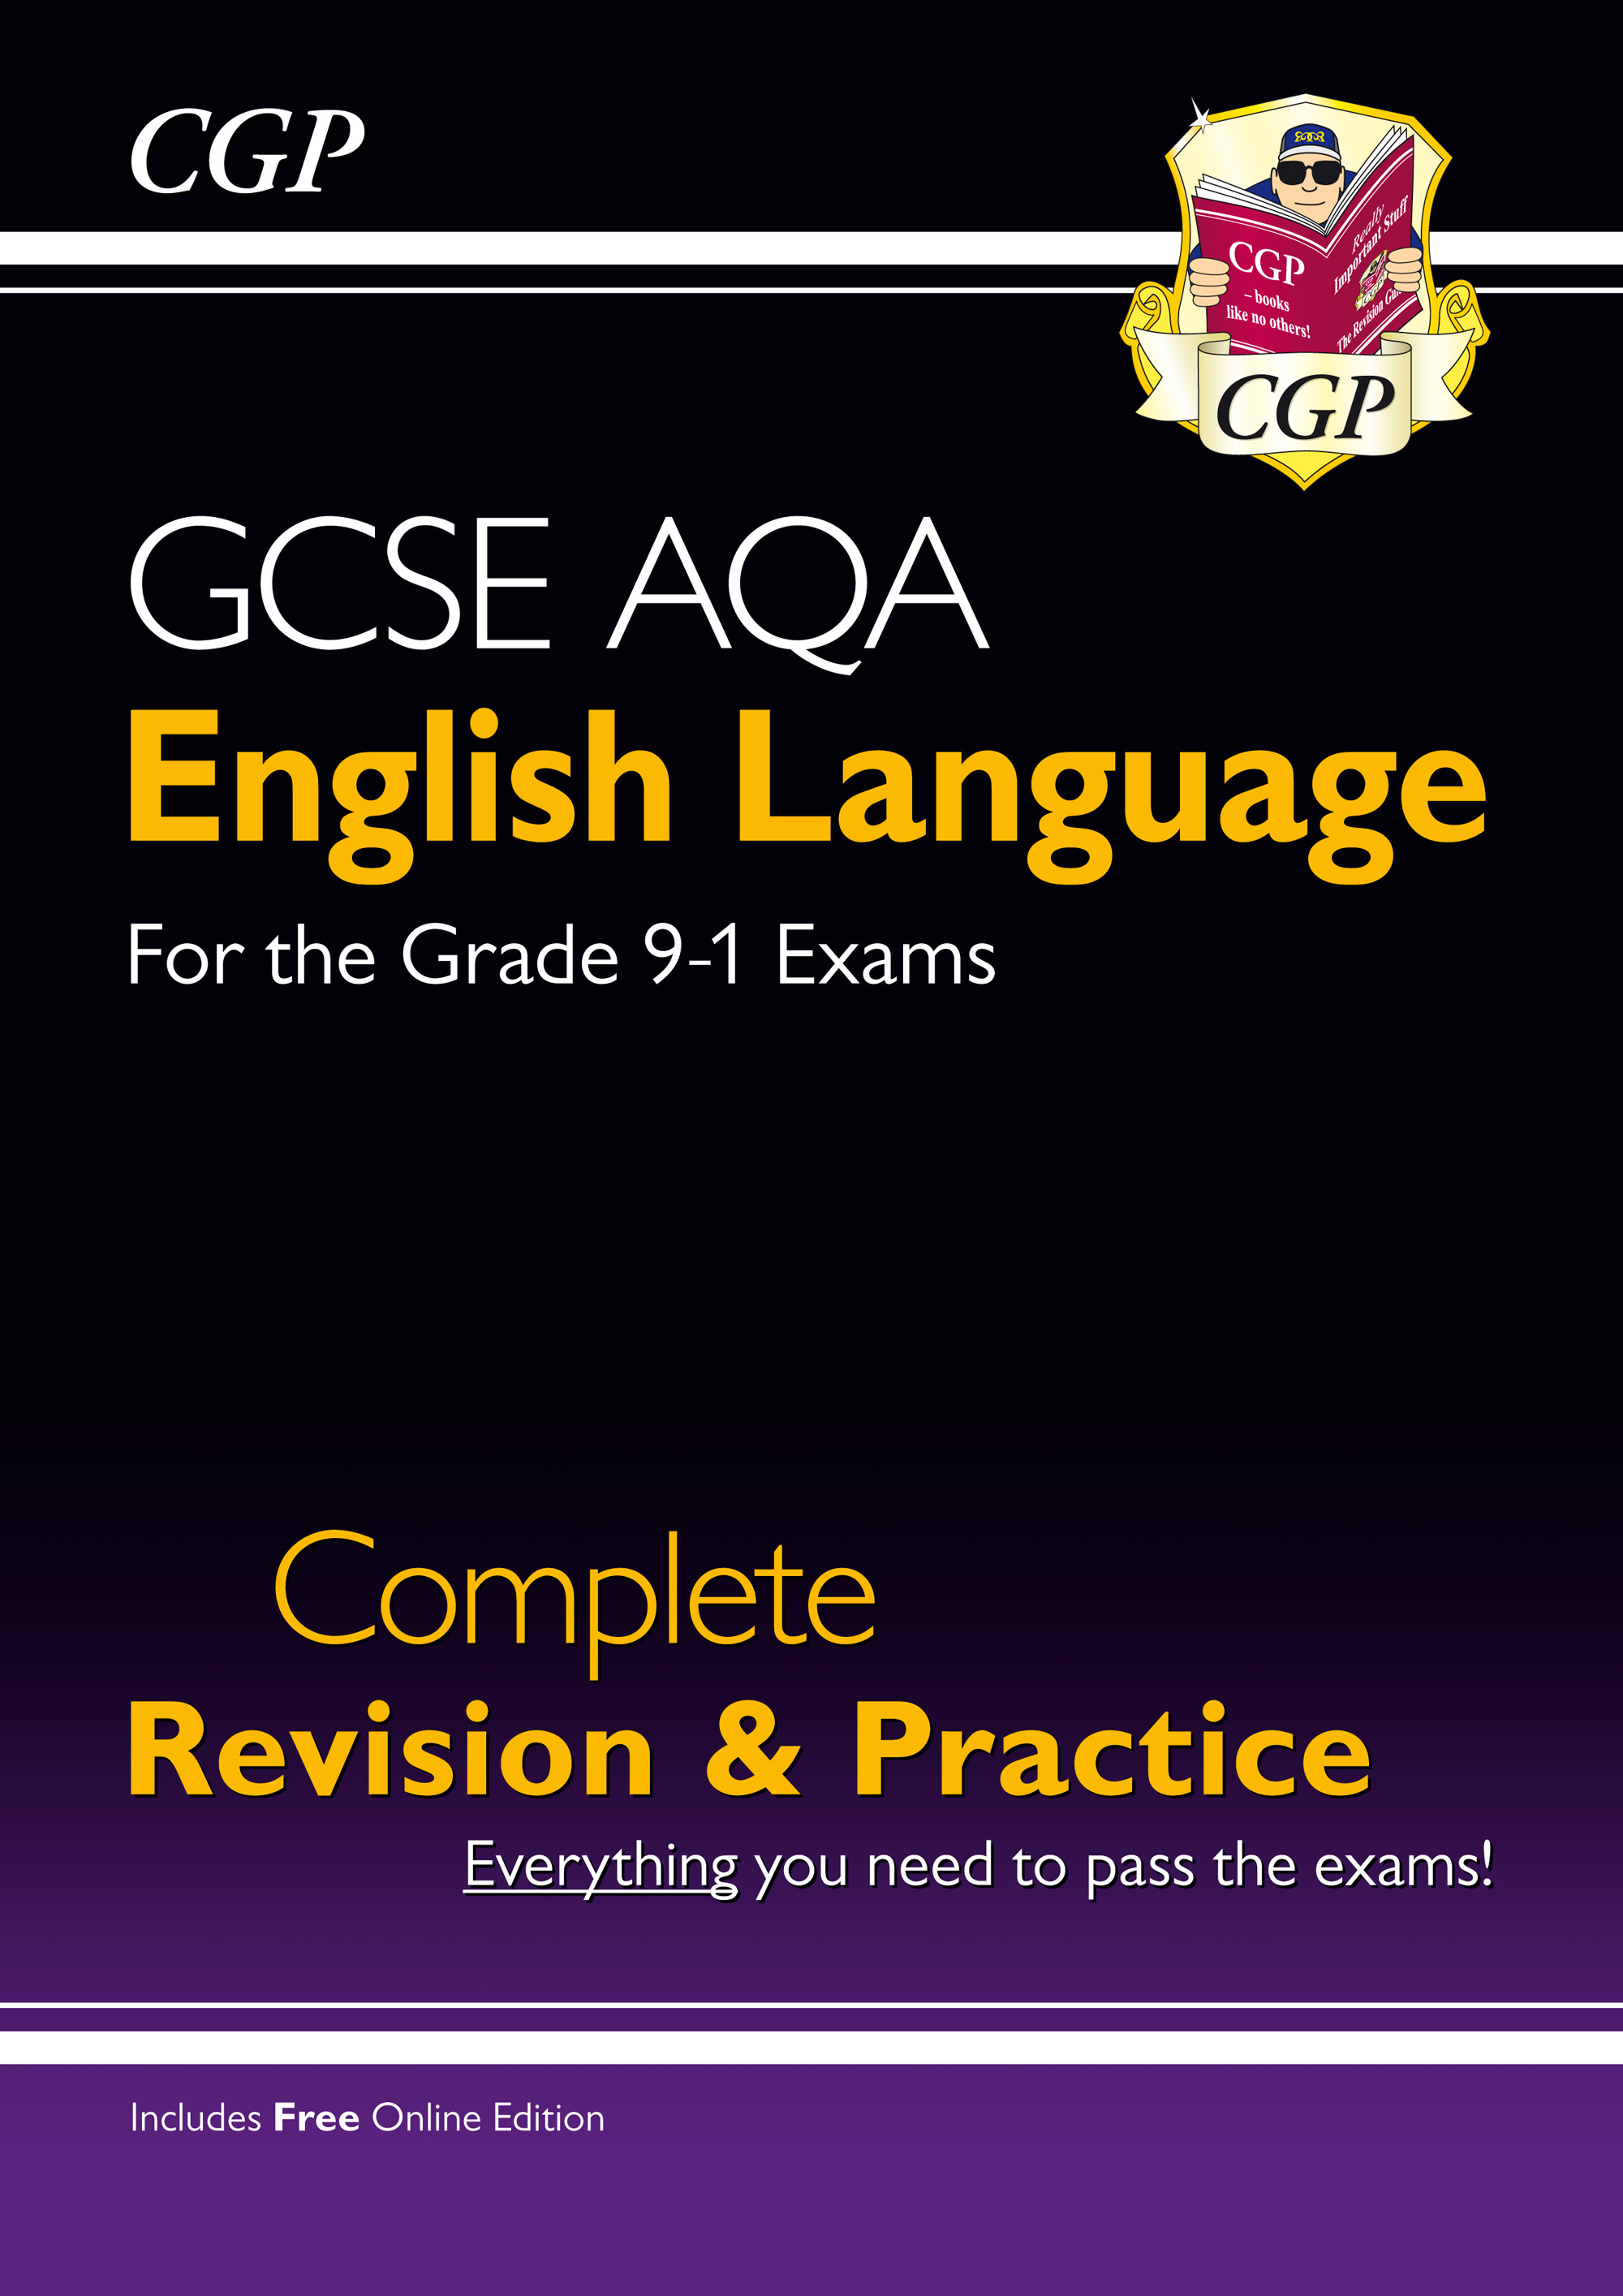 ENAS42 - GCSE English Language AQA Complete Revision & Practice - Grade 9-1 Course (with Online Edition)